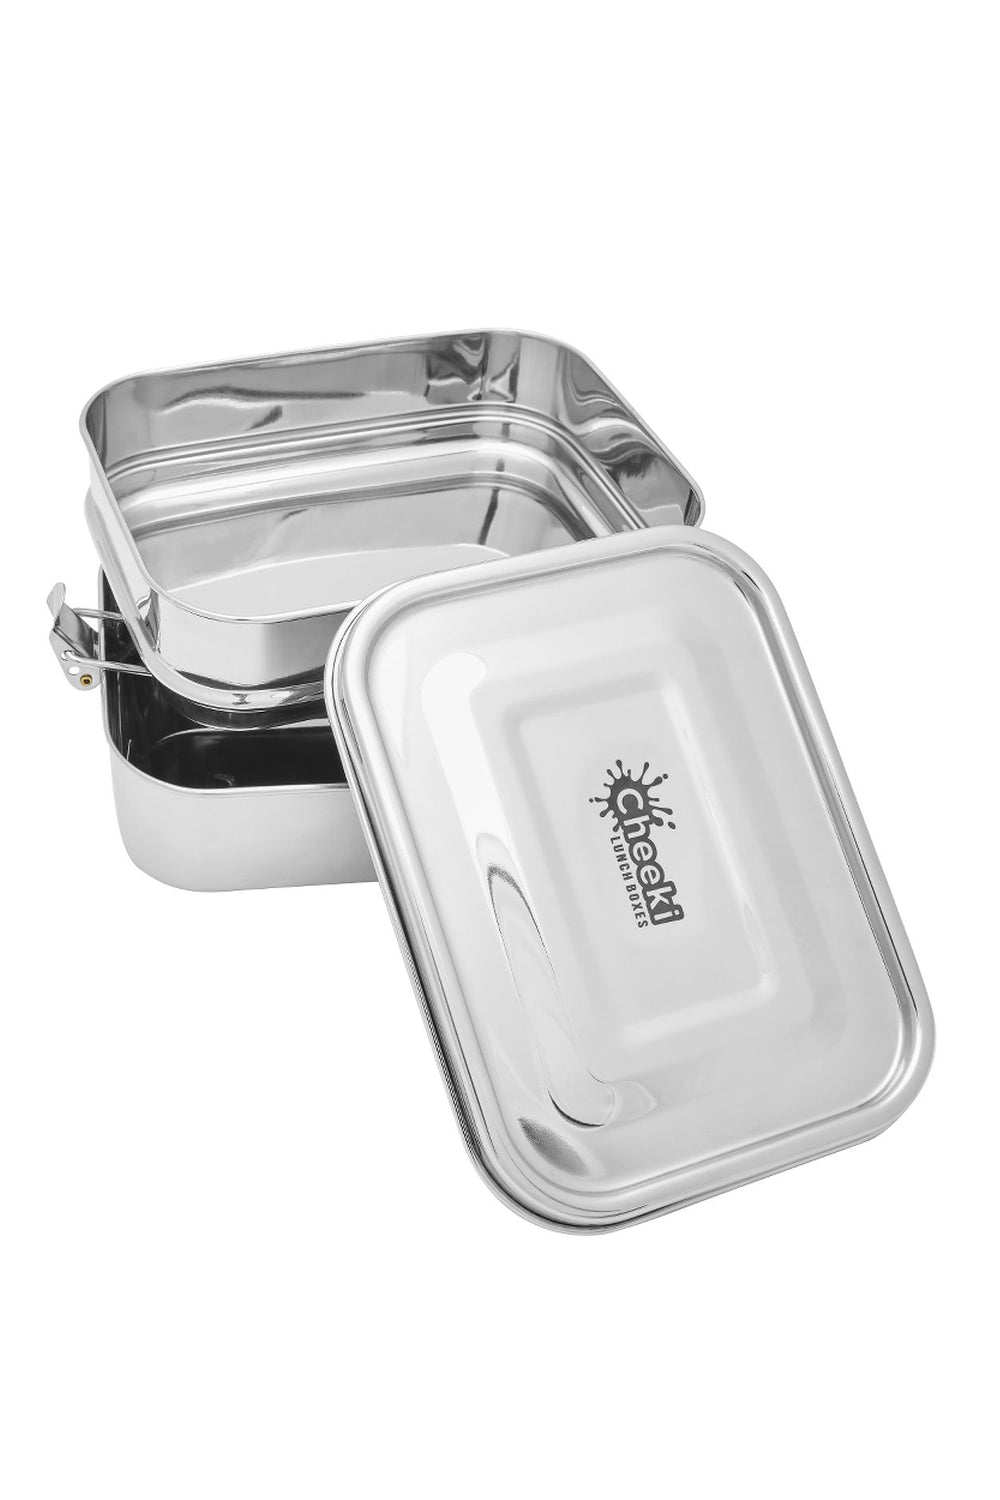 Cheeki | Cheeki 1 litre double stack Bento lunch box | Plastic Free Living | Environmentally Friendly Homewares